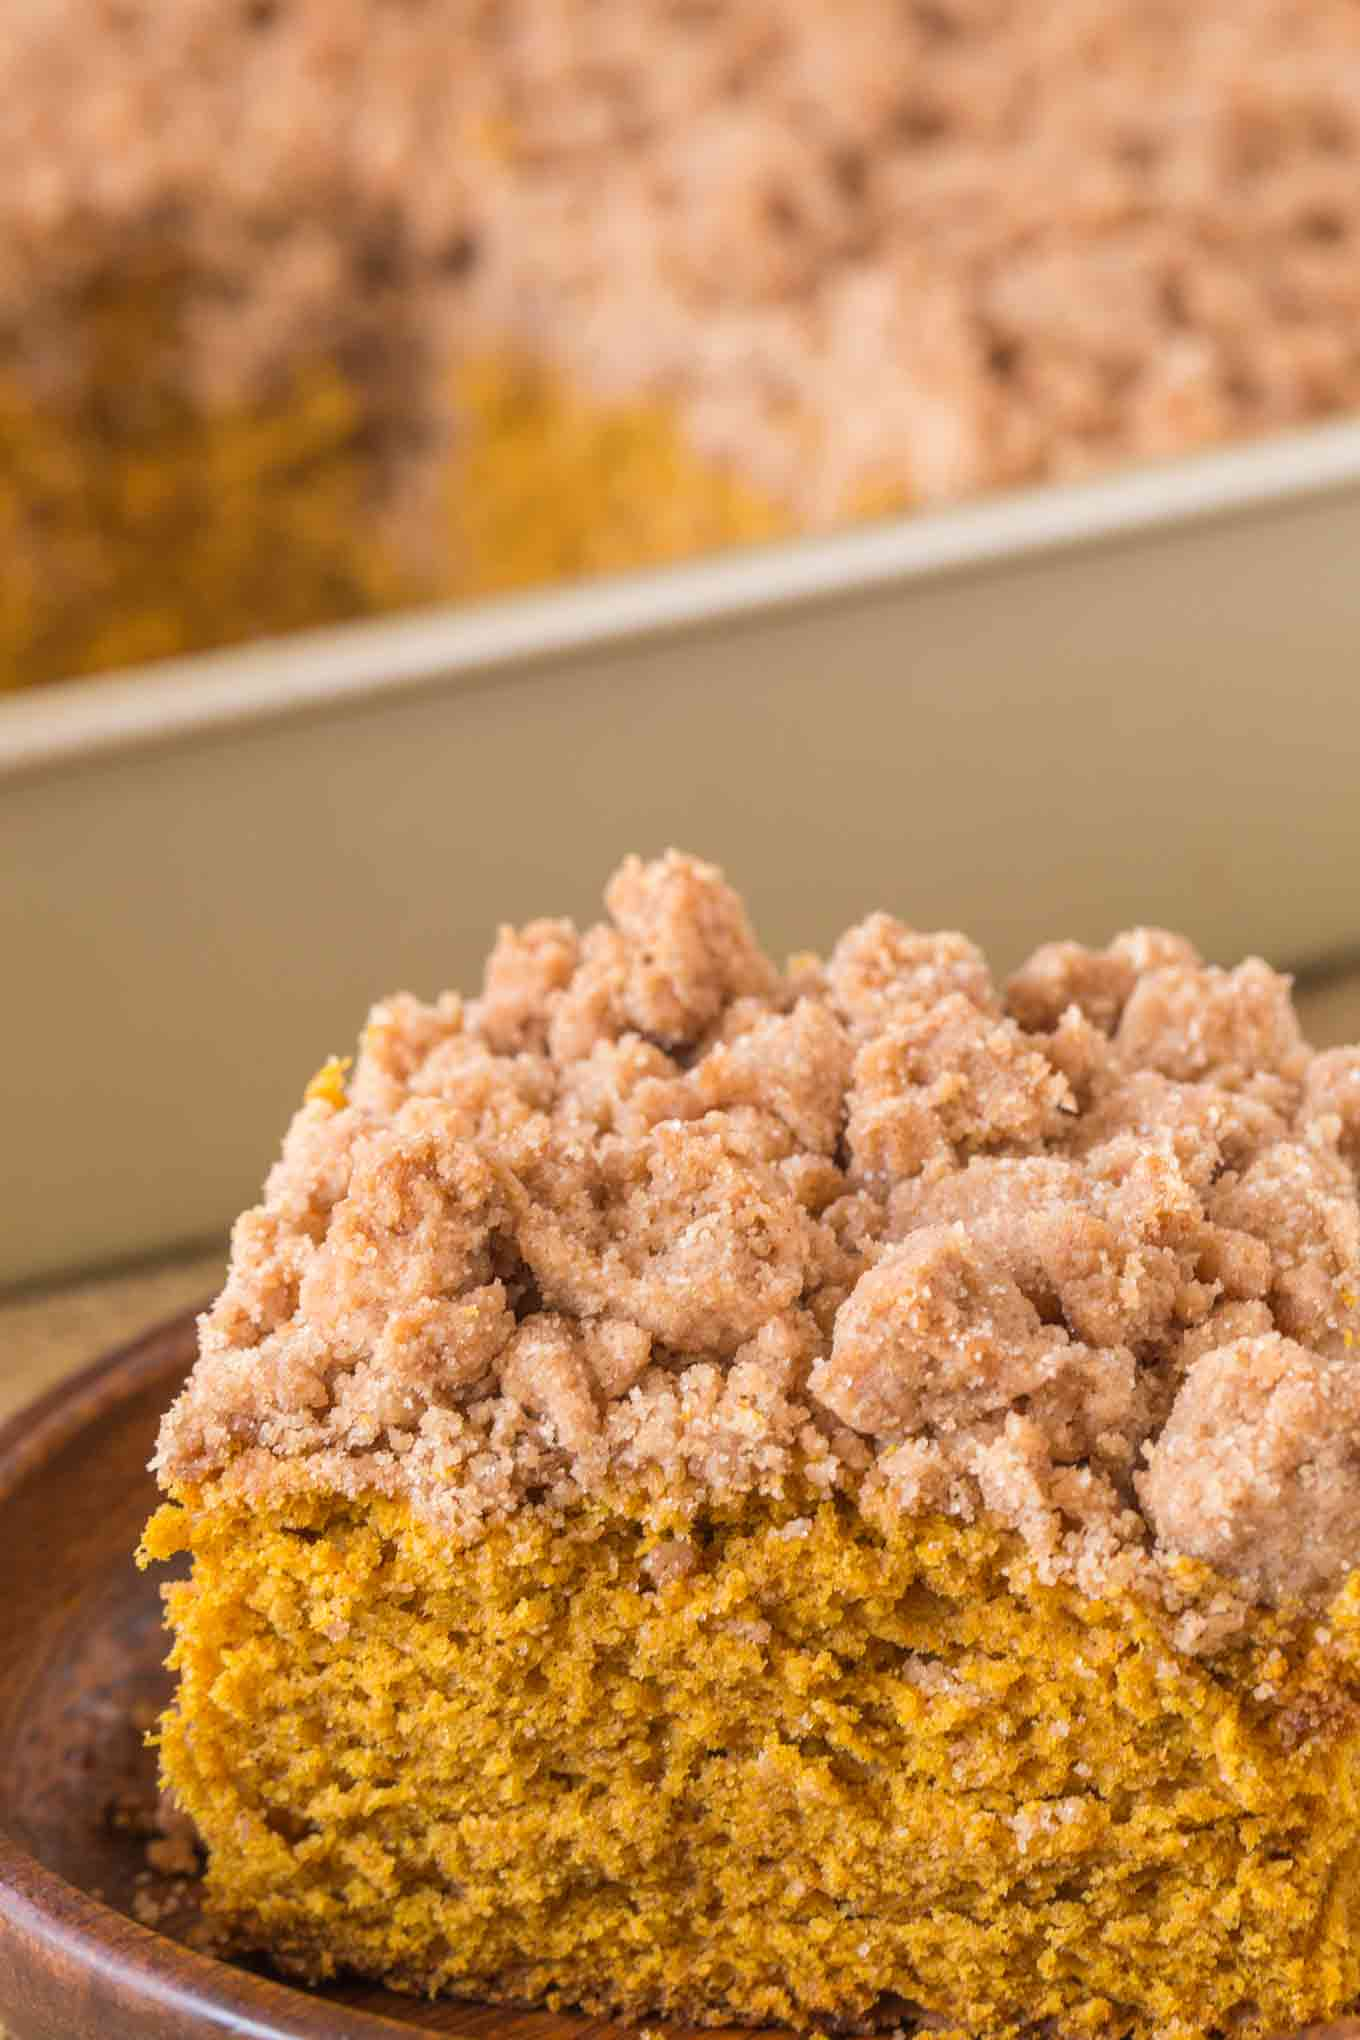 Pumpkin Crumb Cake with a New York Bakery Style giant brown sugar crumble topping is a fall bakery treat you'll enjoy for breakfasts all winter long.